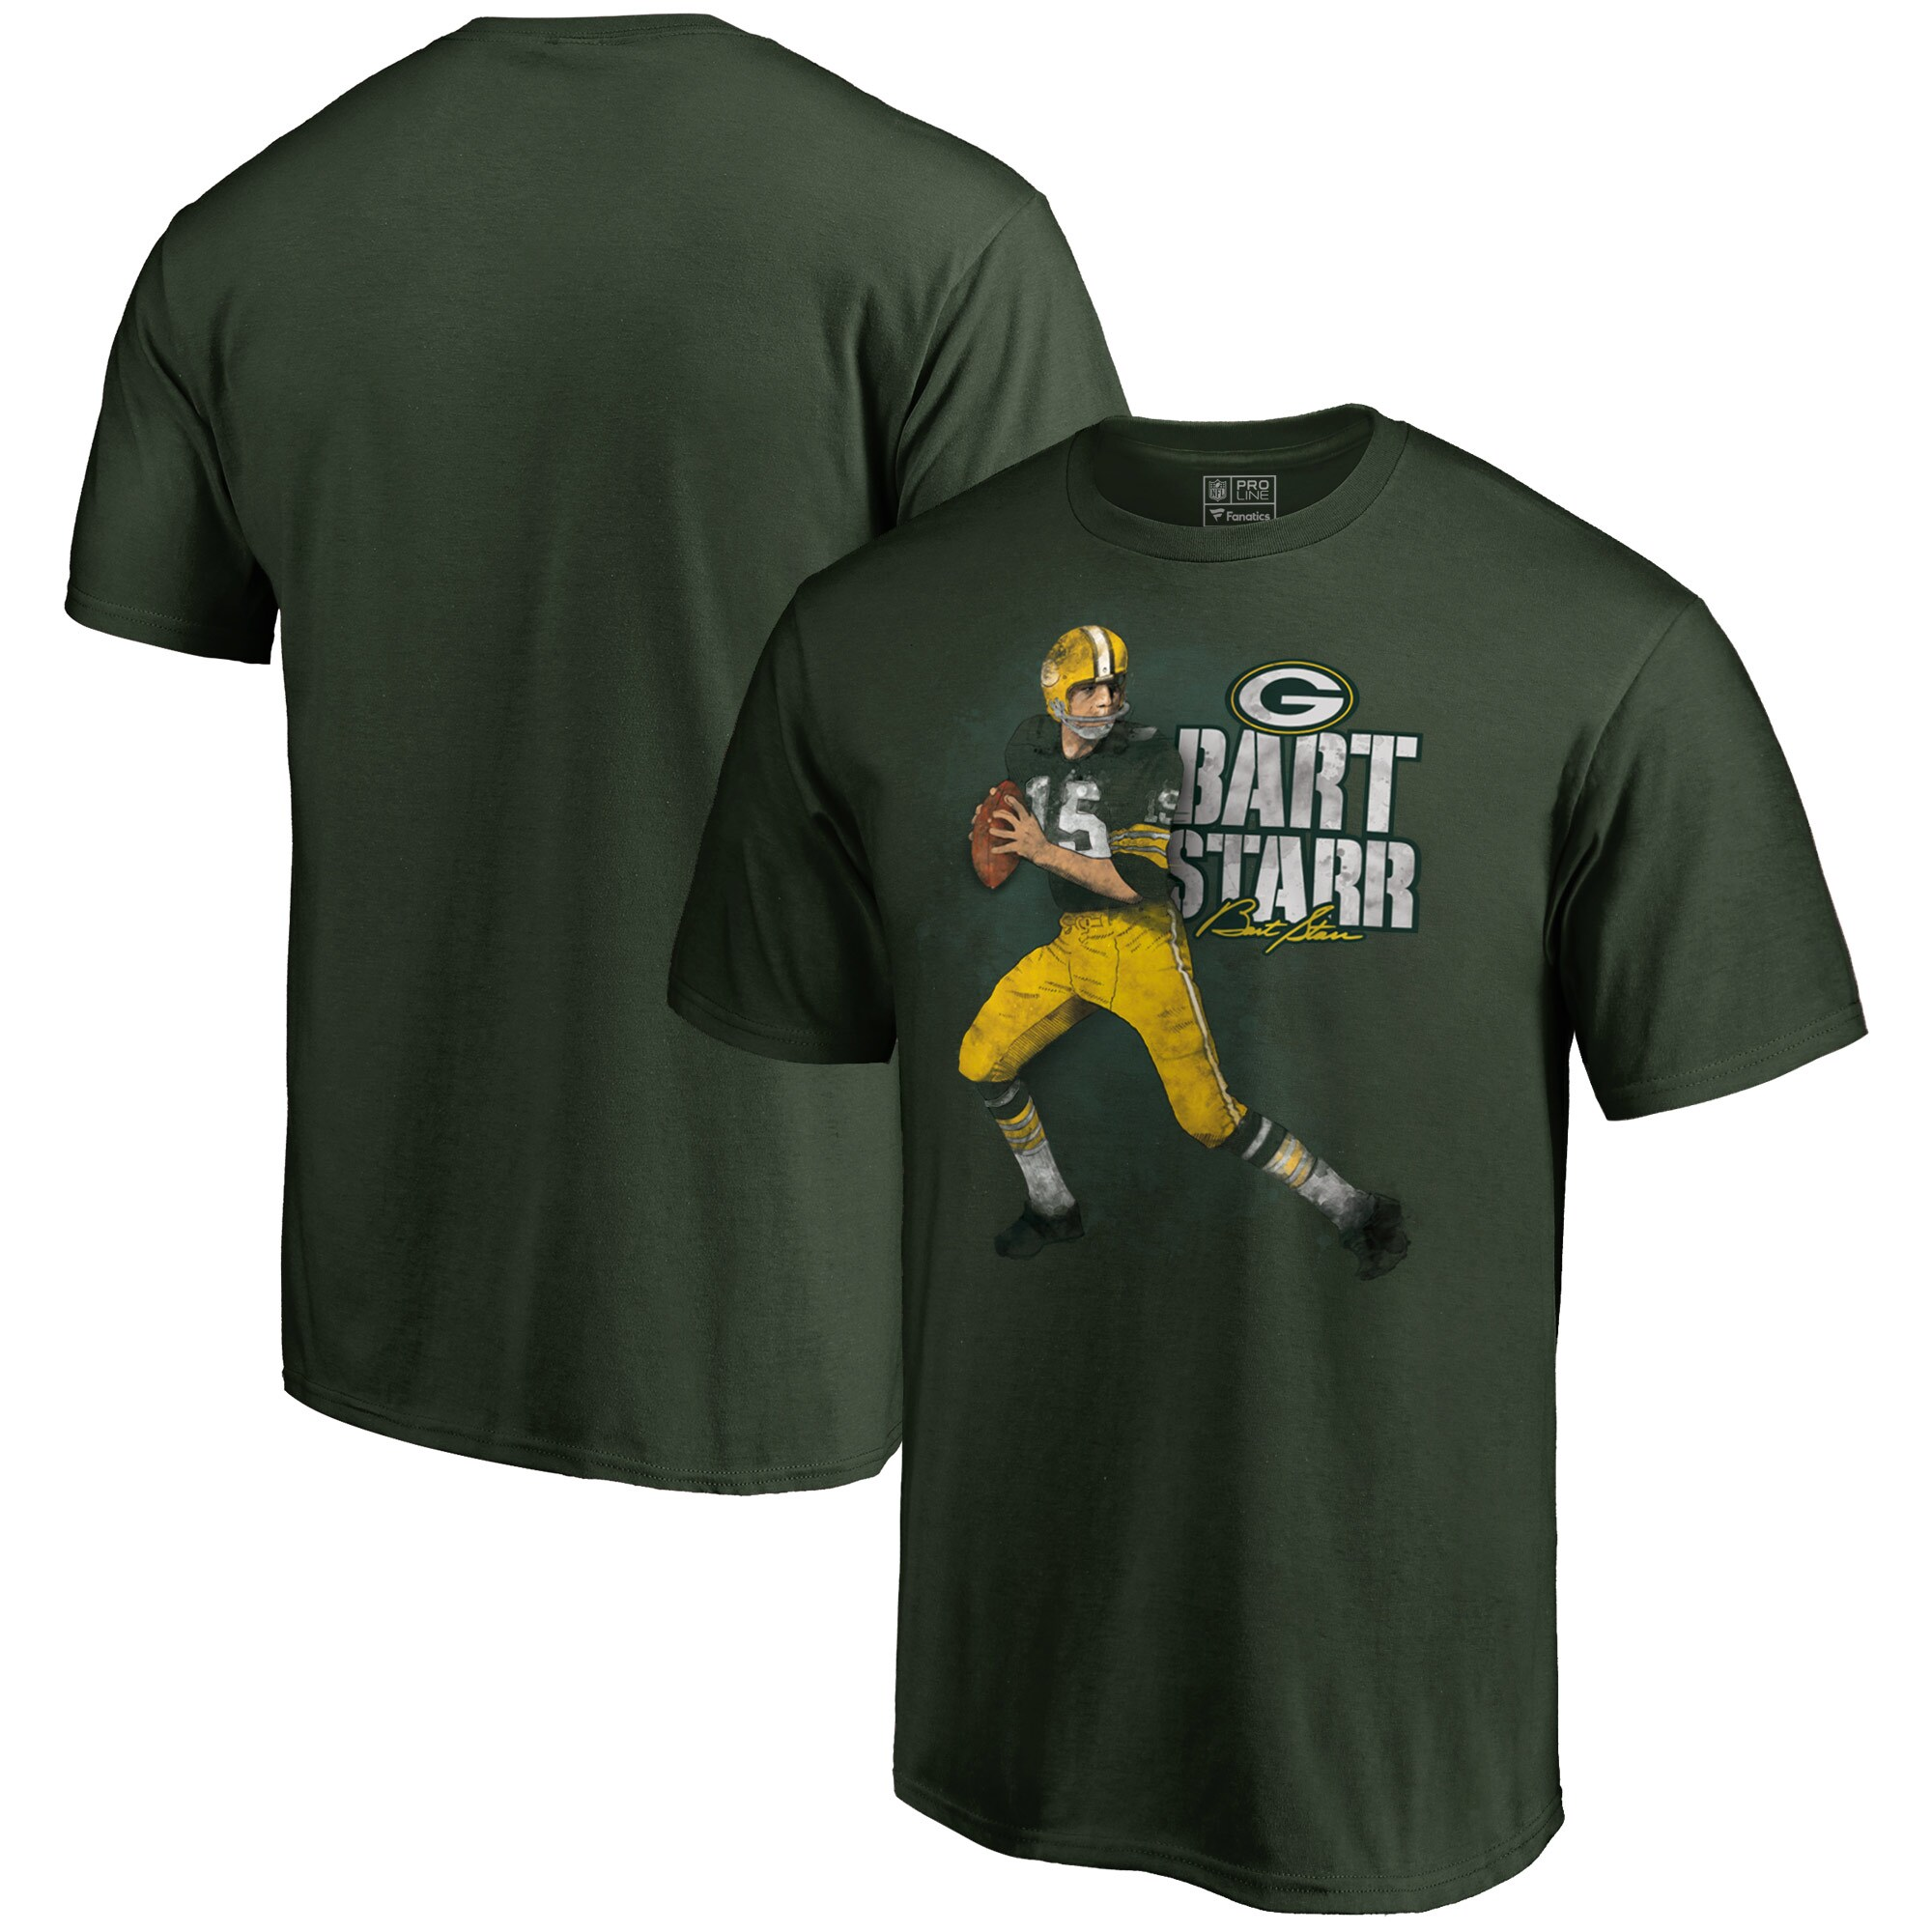 Green Bay Packers Bart Starr NFL Pro Line Retired Player Illustration Name & Number T-Shirt - Green